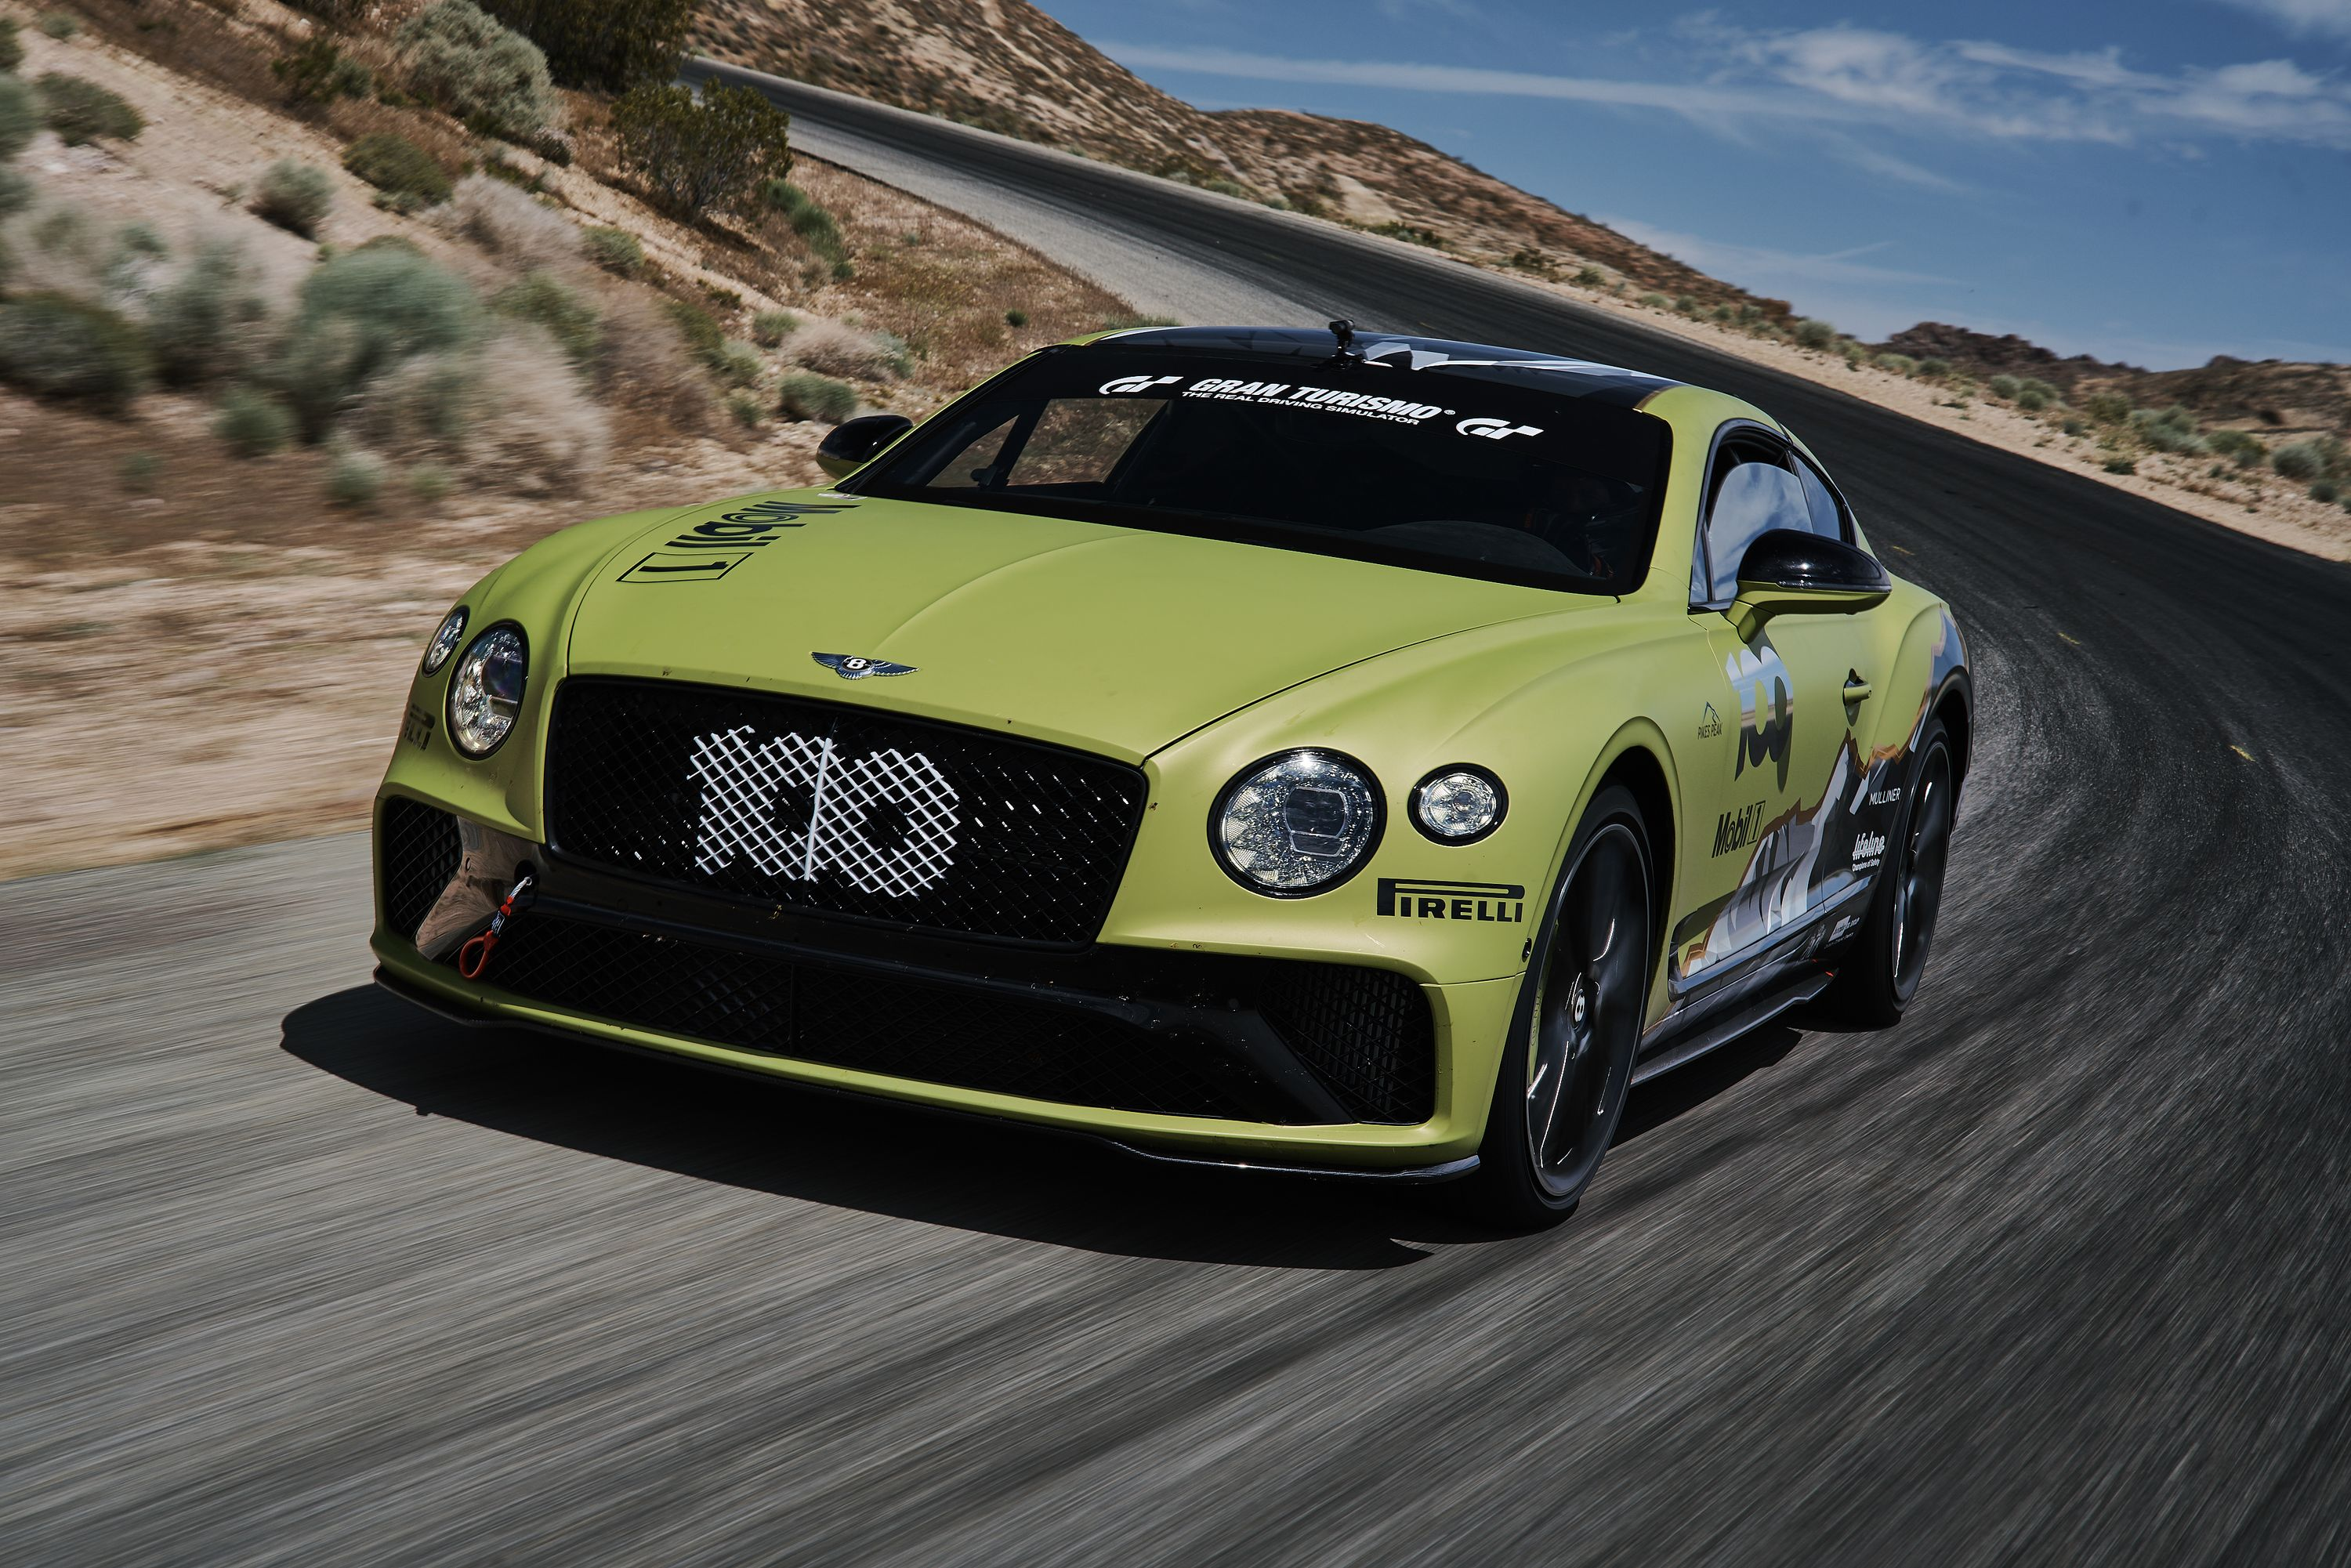 Bentley is bent on breaking the Pikes Peak Hill record